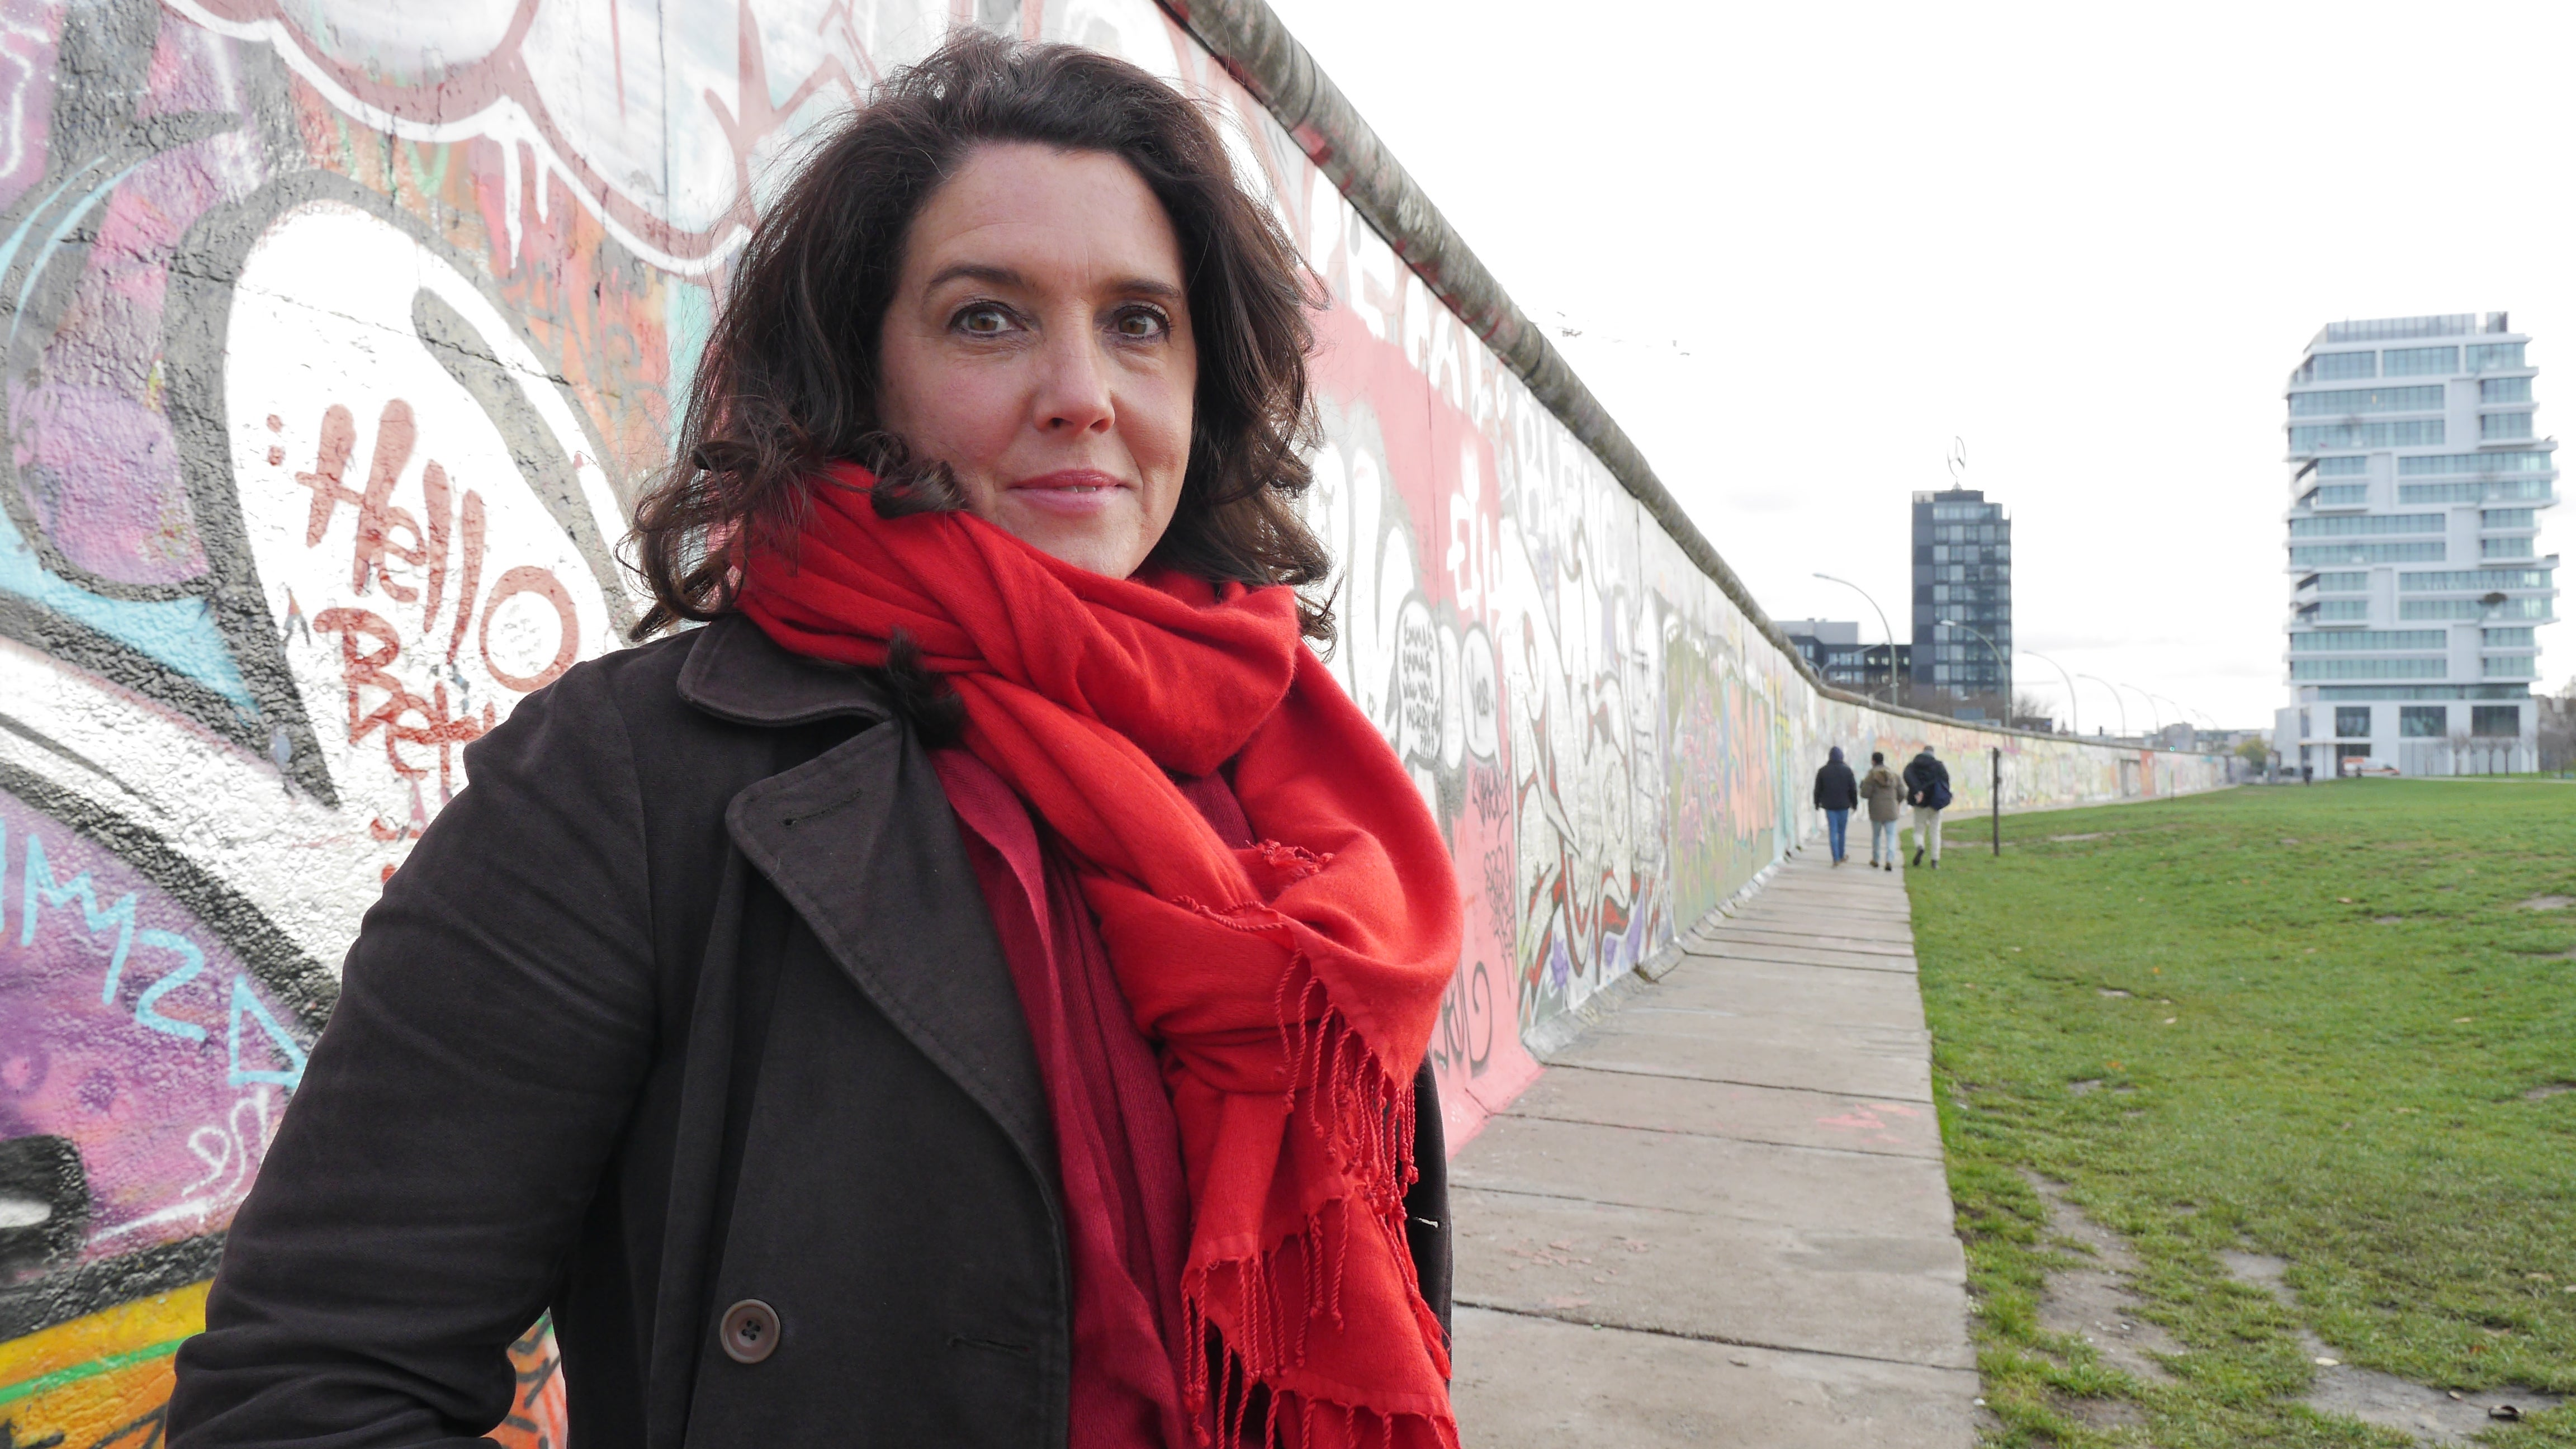 Presenter Bettany Hughes at the Berlin Wall